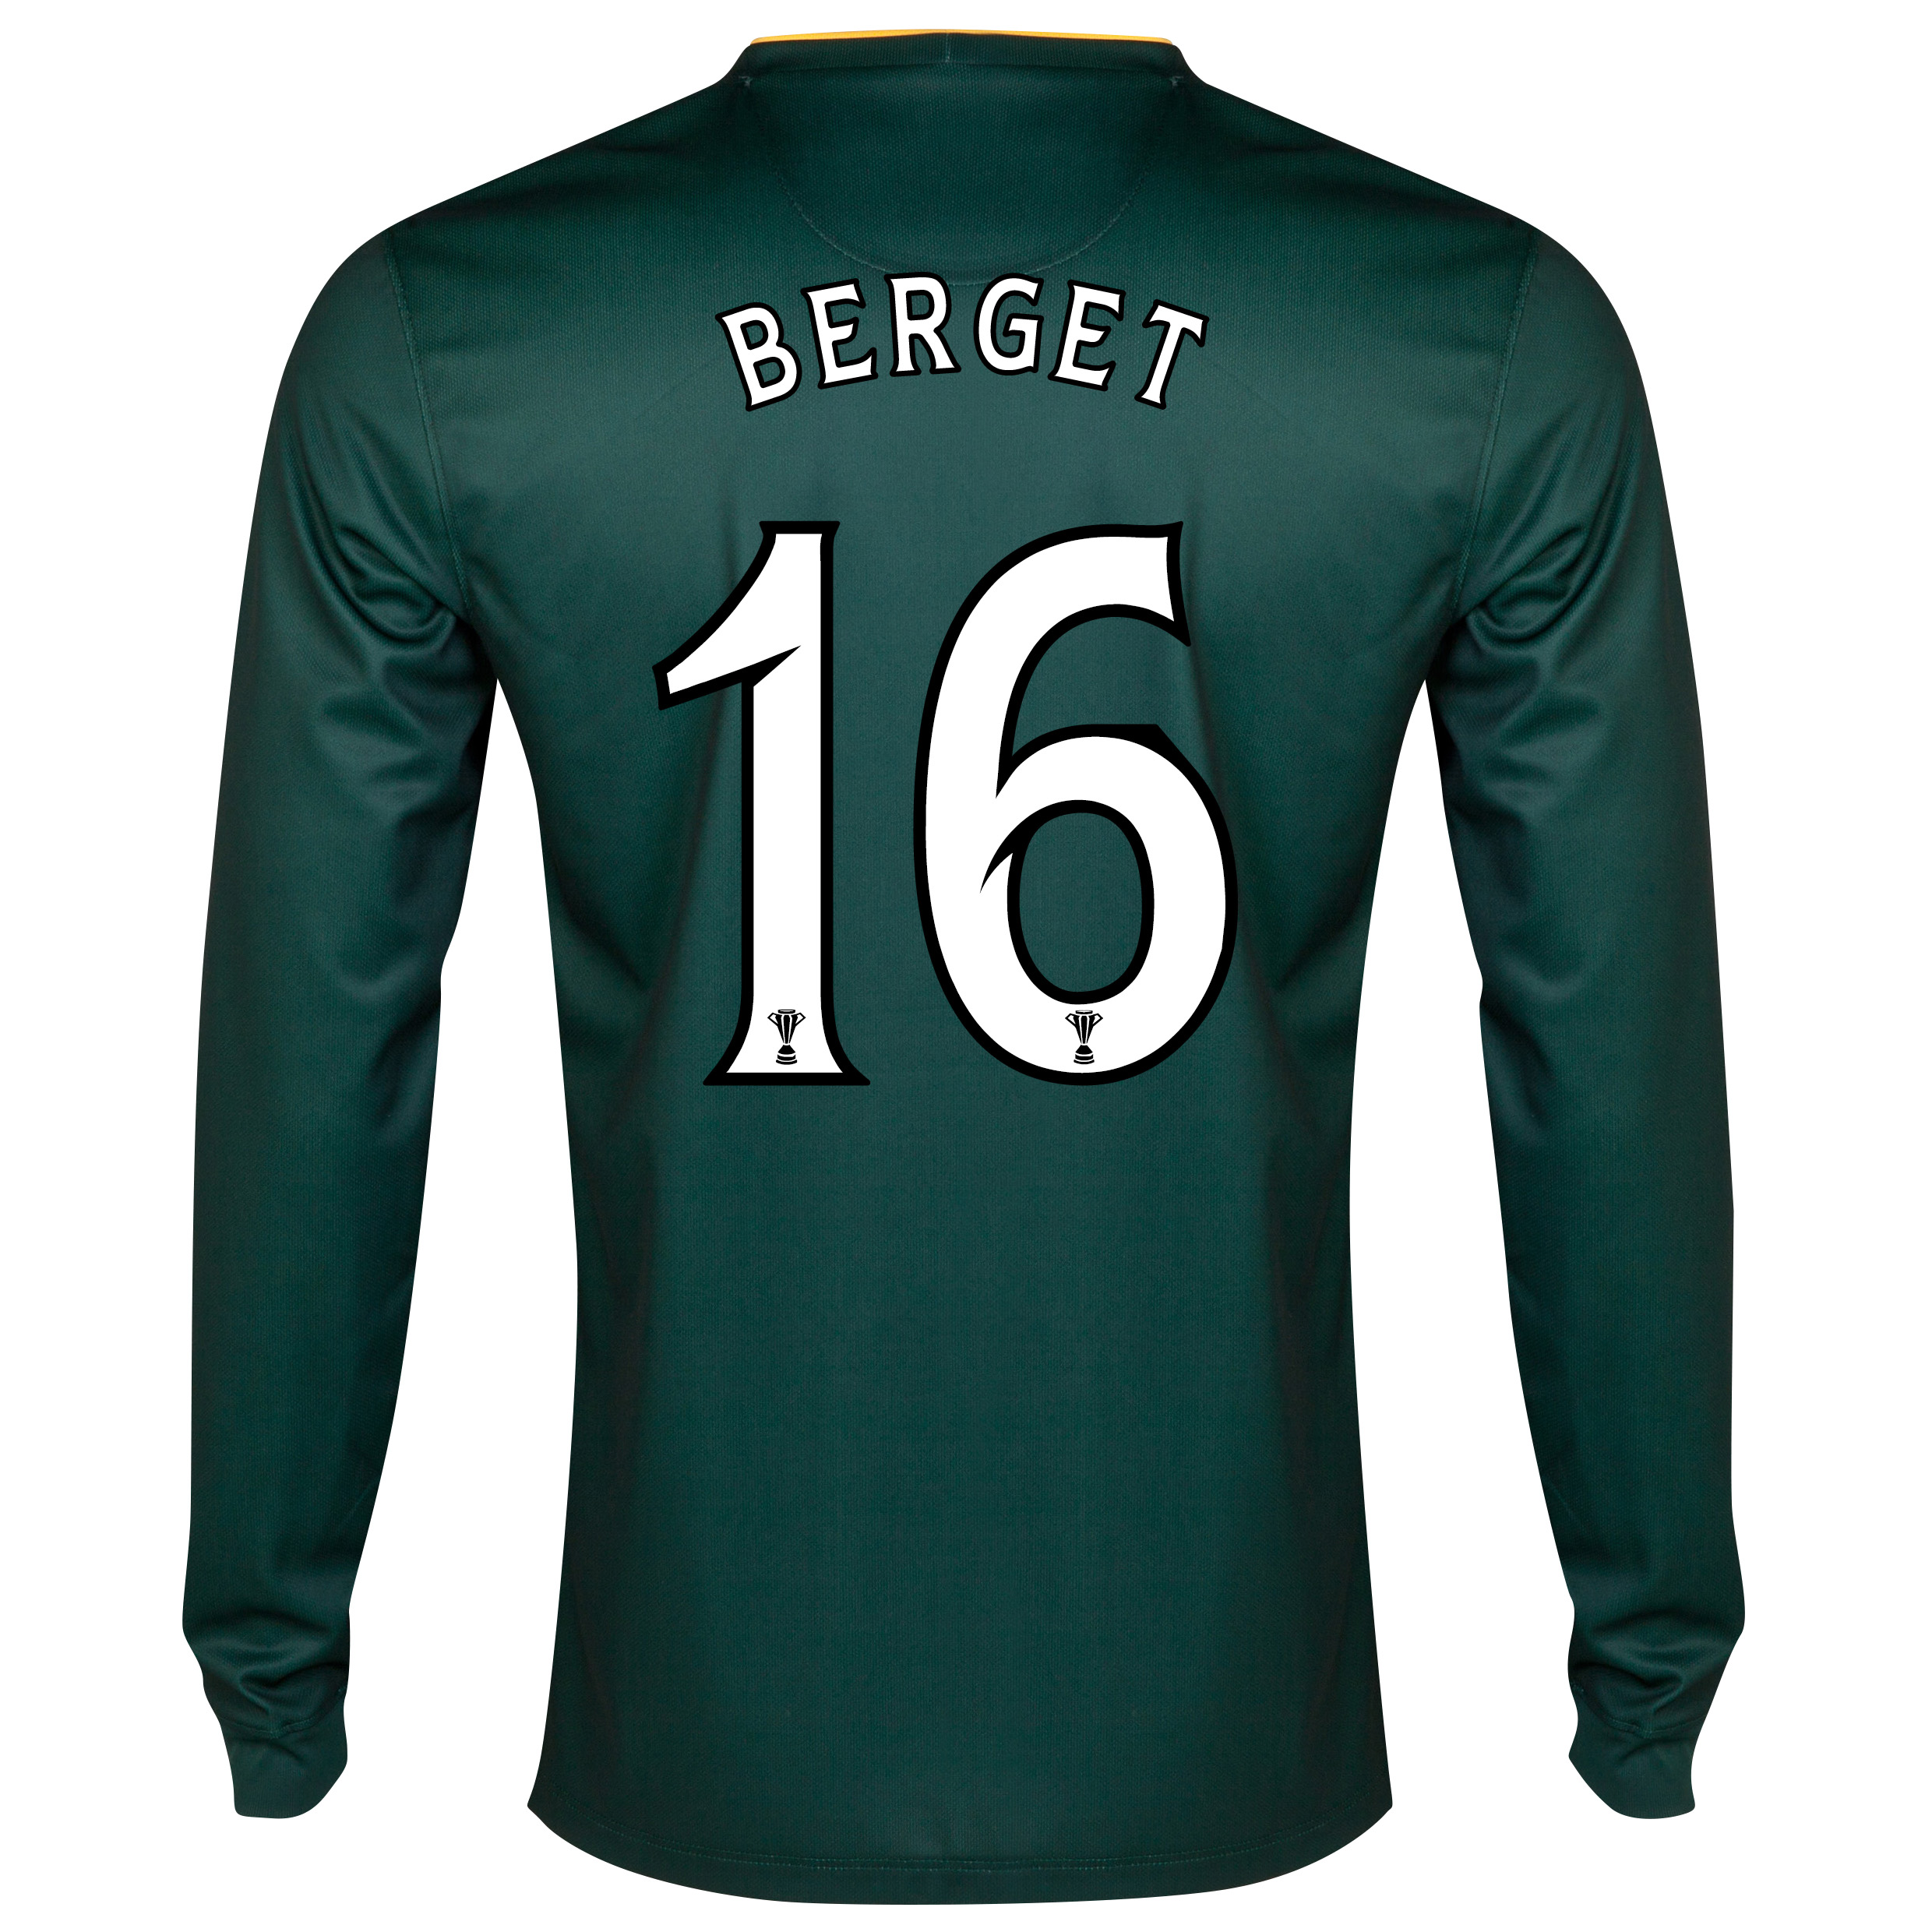 Celtic Away Shirt 2014/15 - Long Sleeved - Unsponsored Green with Berget 16 printing